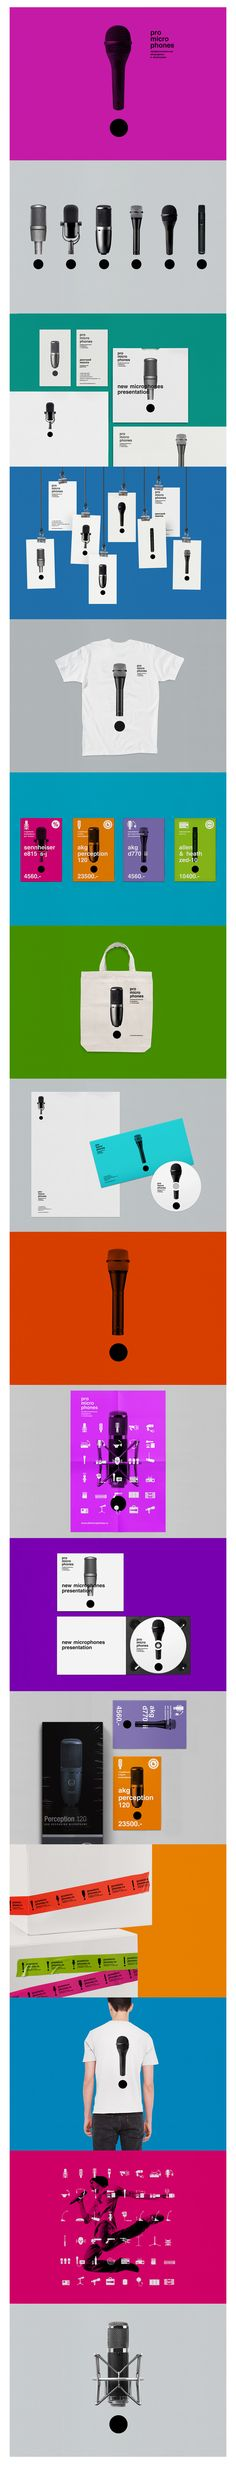 Promicrophones, Identity © Vova Lifanov  design identity #packaging #branding #marketing PD